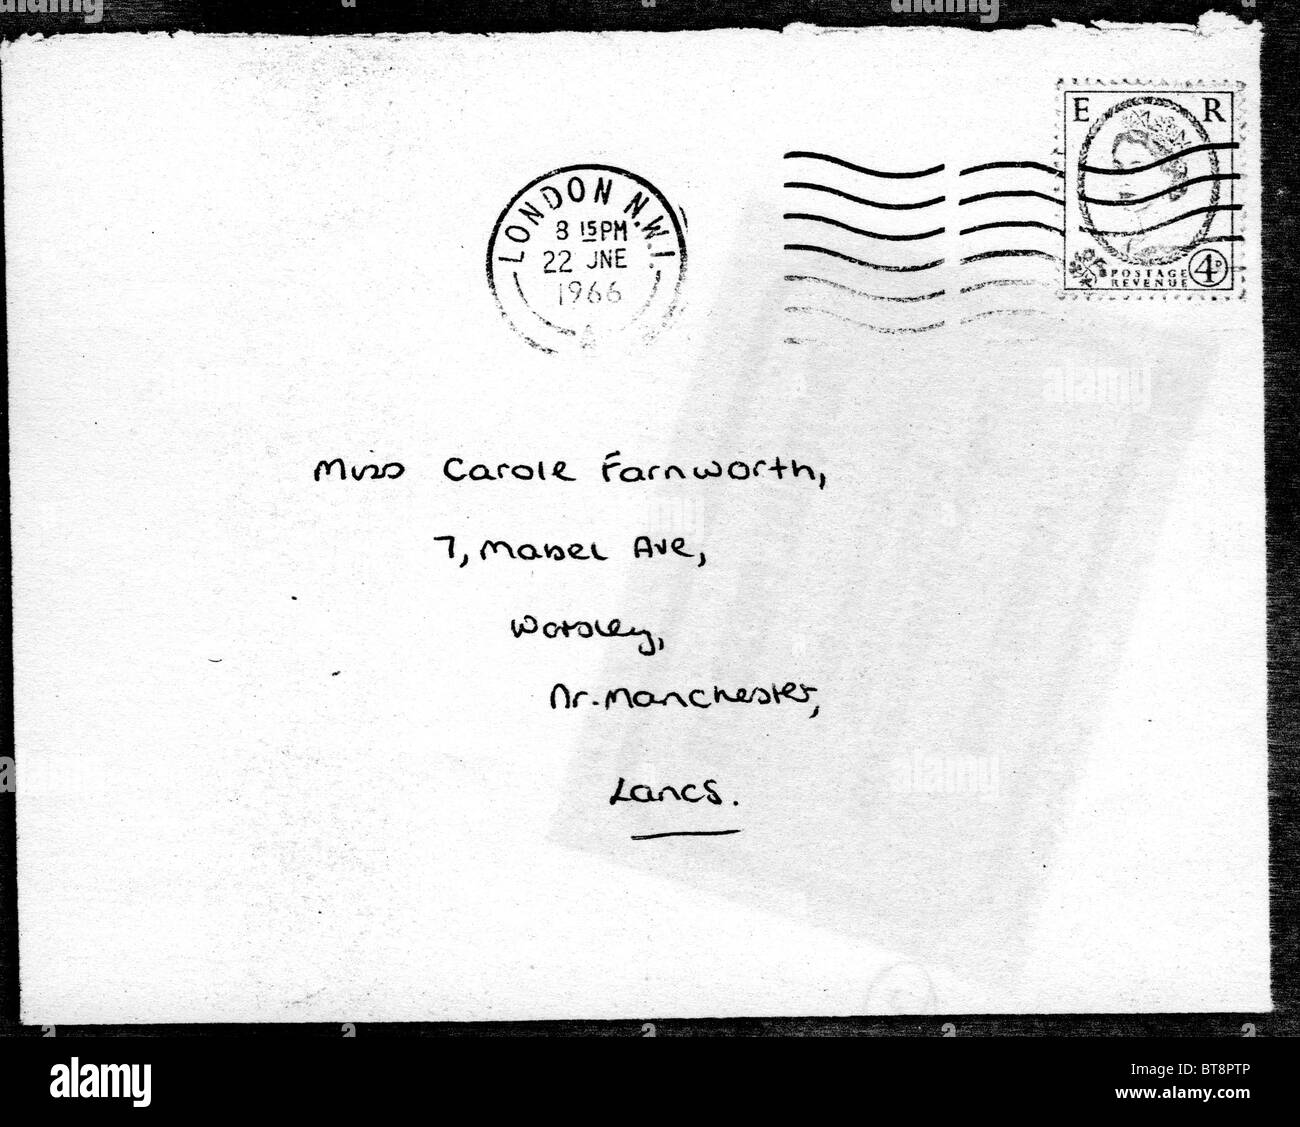 ROLLING STONES  Envelope for letter to fan 22 June 1966 written by Keith Richards - Stock Image